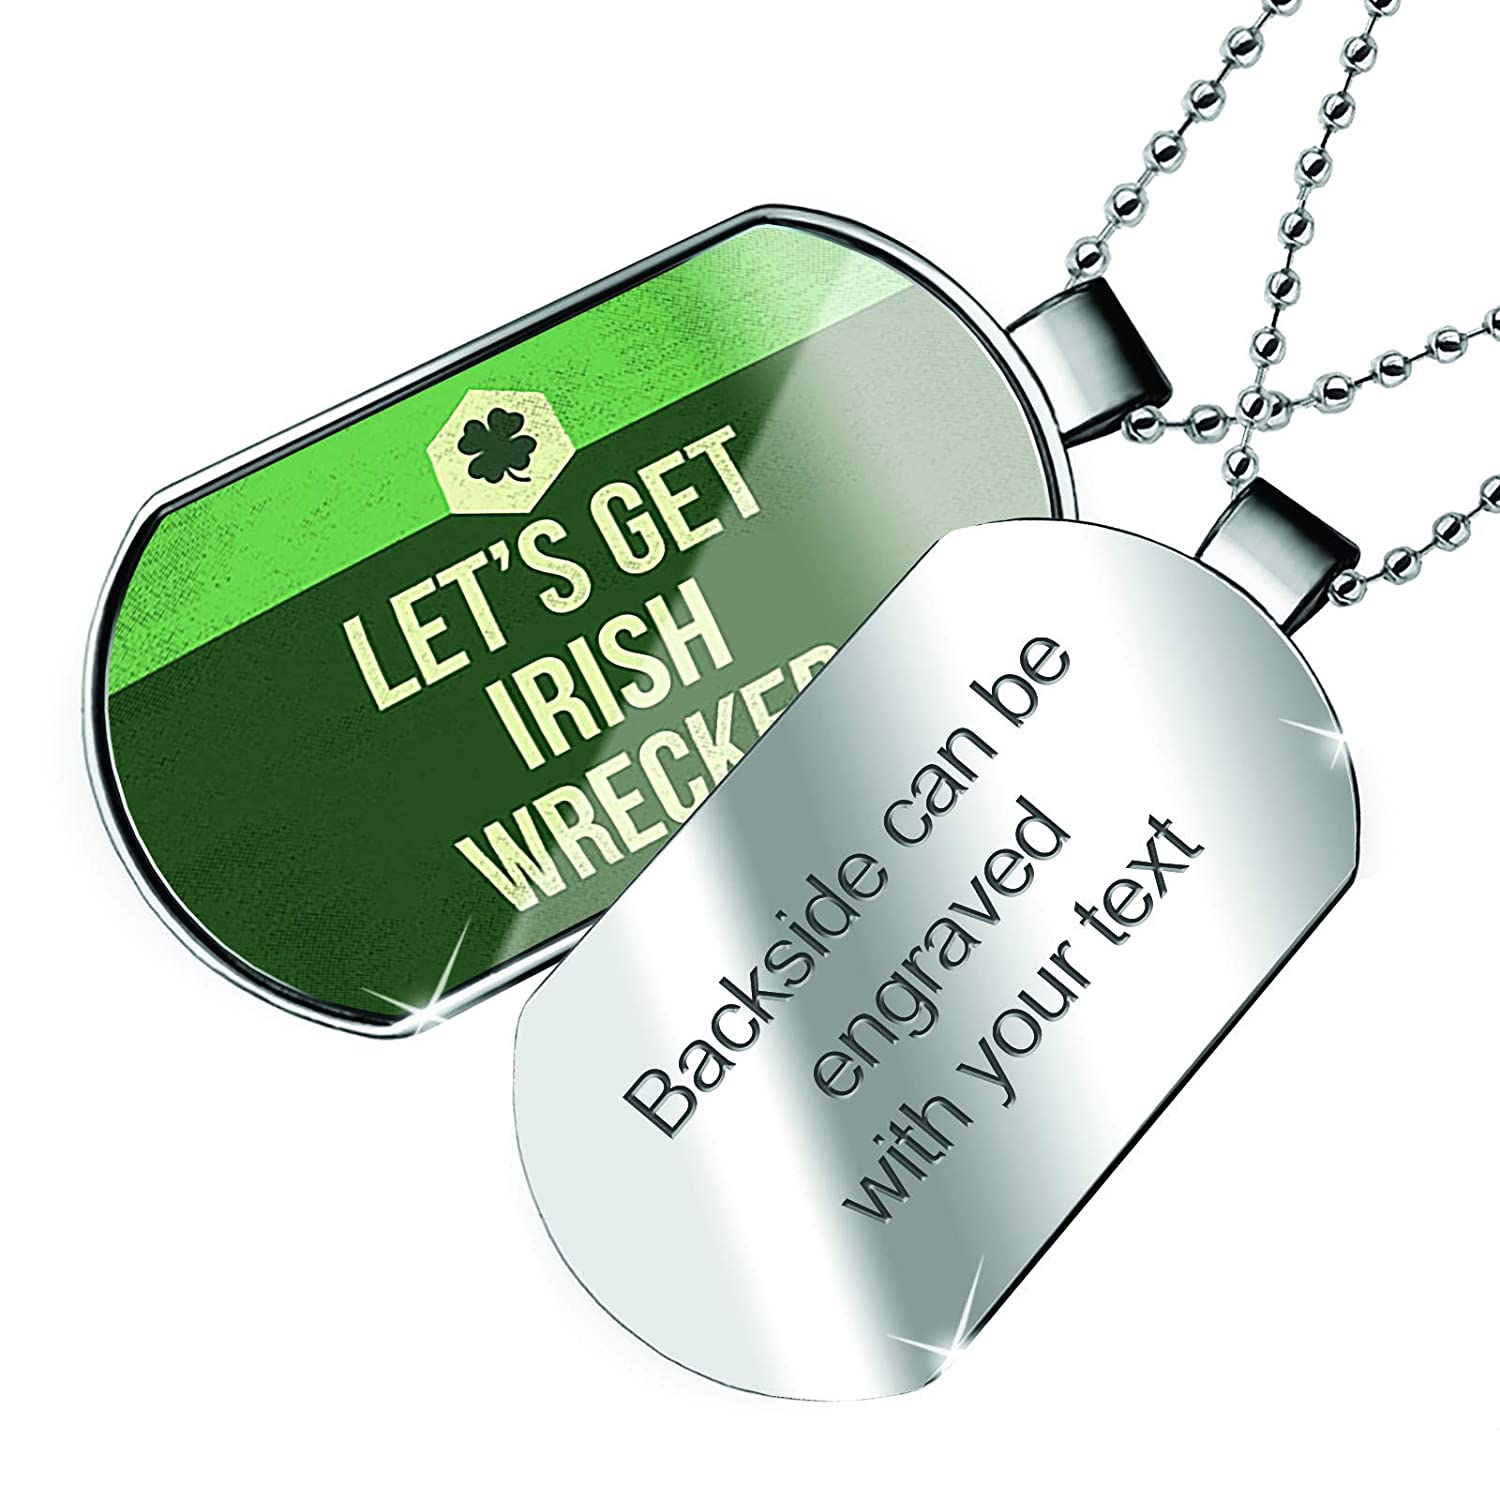 Patricks Day Vintage Four Leaf Clover Dogtag Necklace NEONBLOND Personalized Name Engraved Lets Get Irish Wrecked St